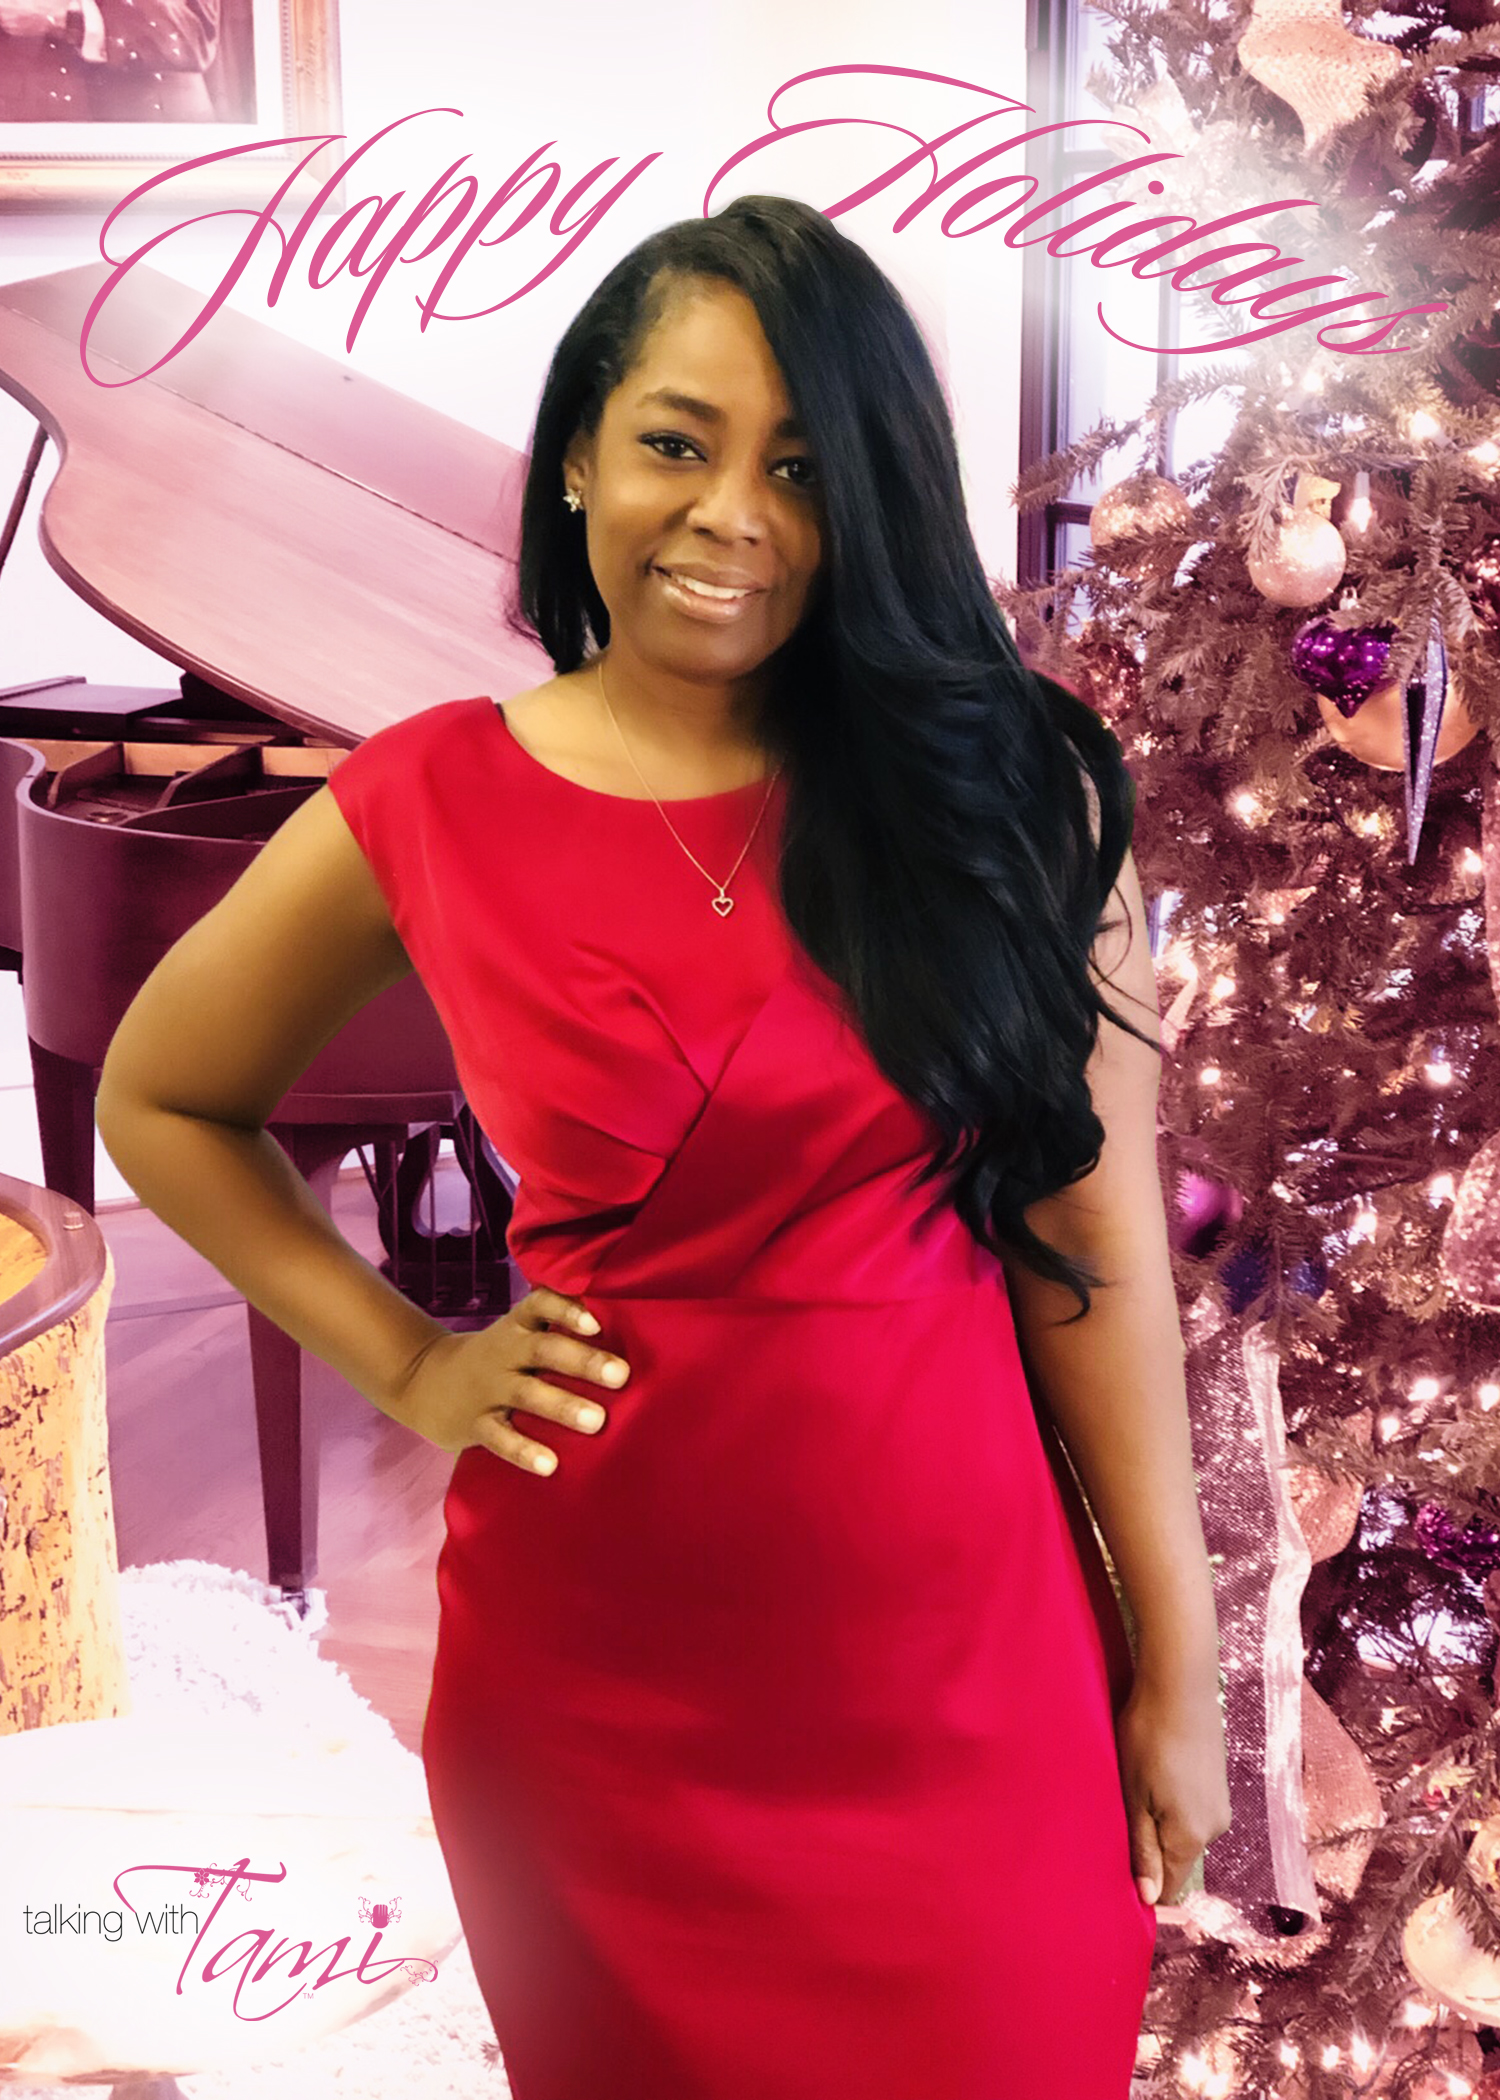 Happy Holidays From Talking With Tami